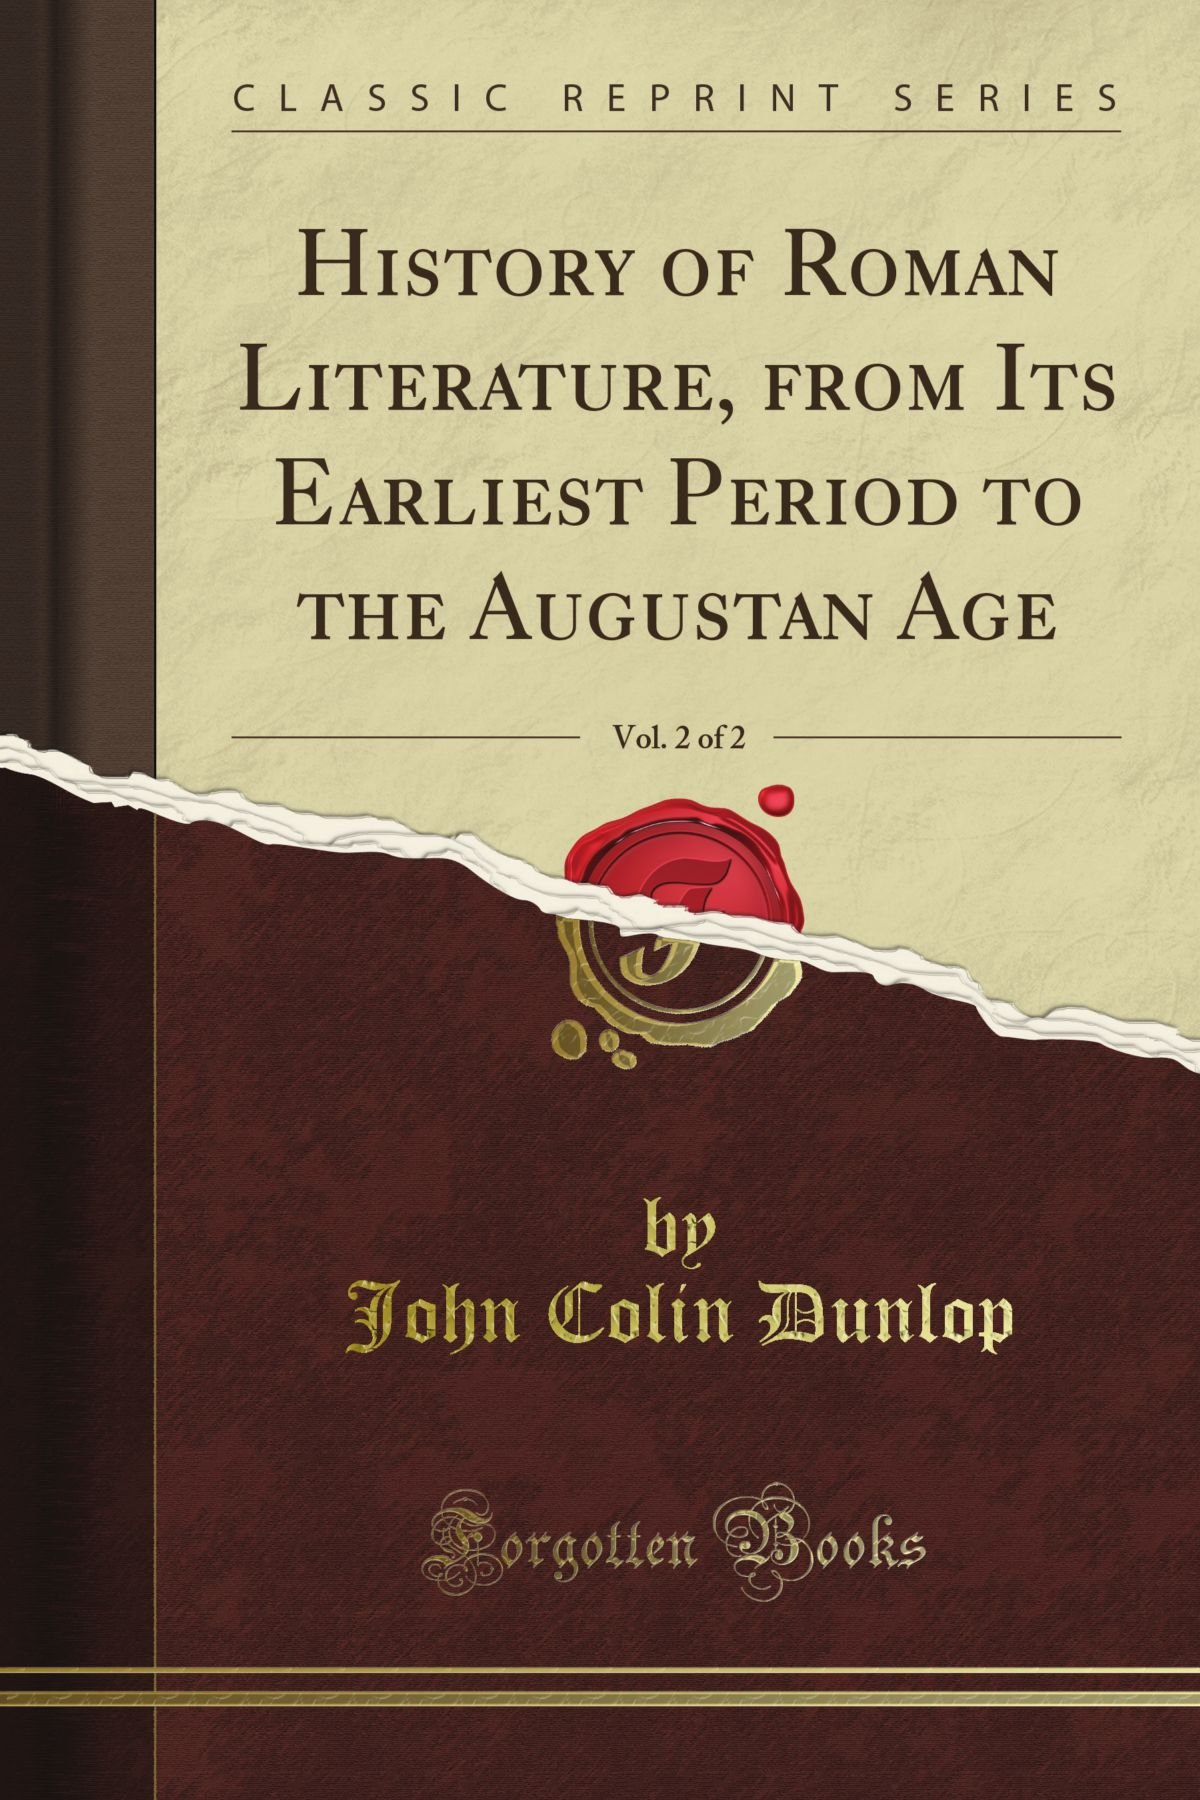 Download History of Roman Literature, from Its Earliest Period to the Augustan Age, Vol. 2 of 2 (Classic Reprint) pdf